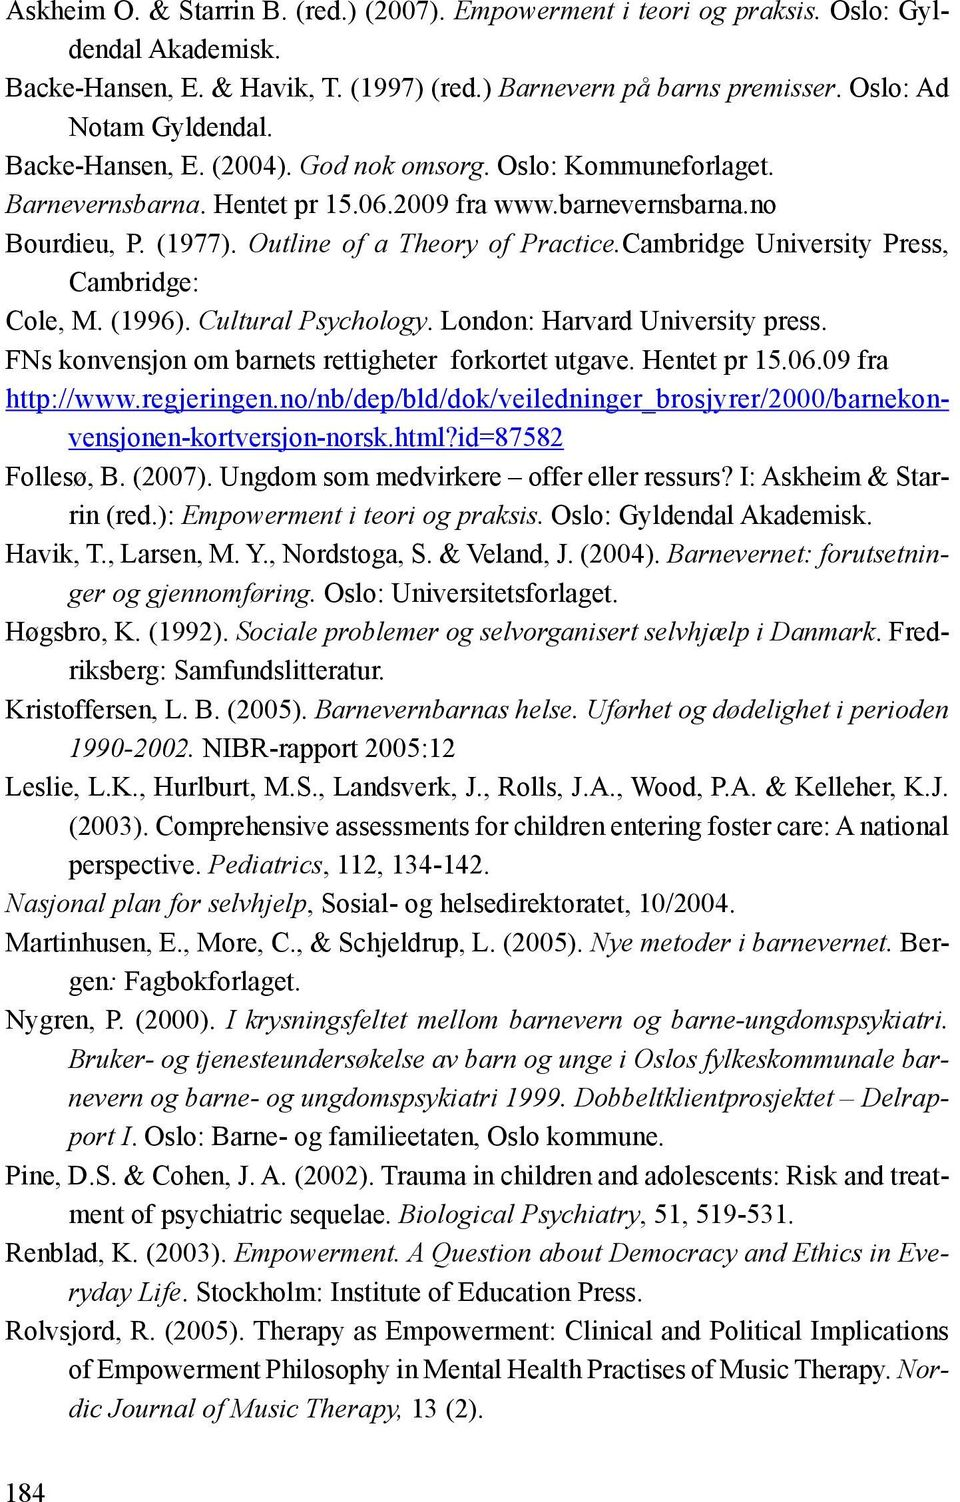 Cambridge University Press, Cambridge: Cole, M. (1996). Cultural Psychology. London: Harvard University press. FNs konvensjon om barnets rettigheter forkortet utgave. Hentet pr 15.06.